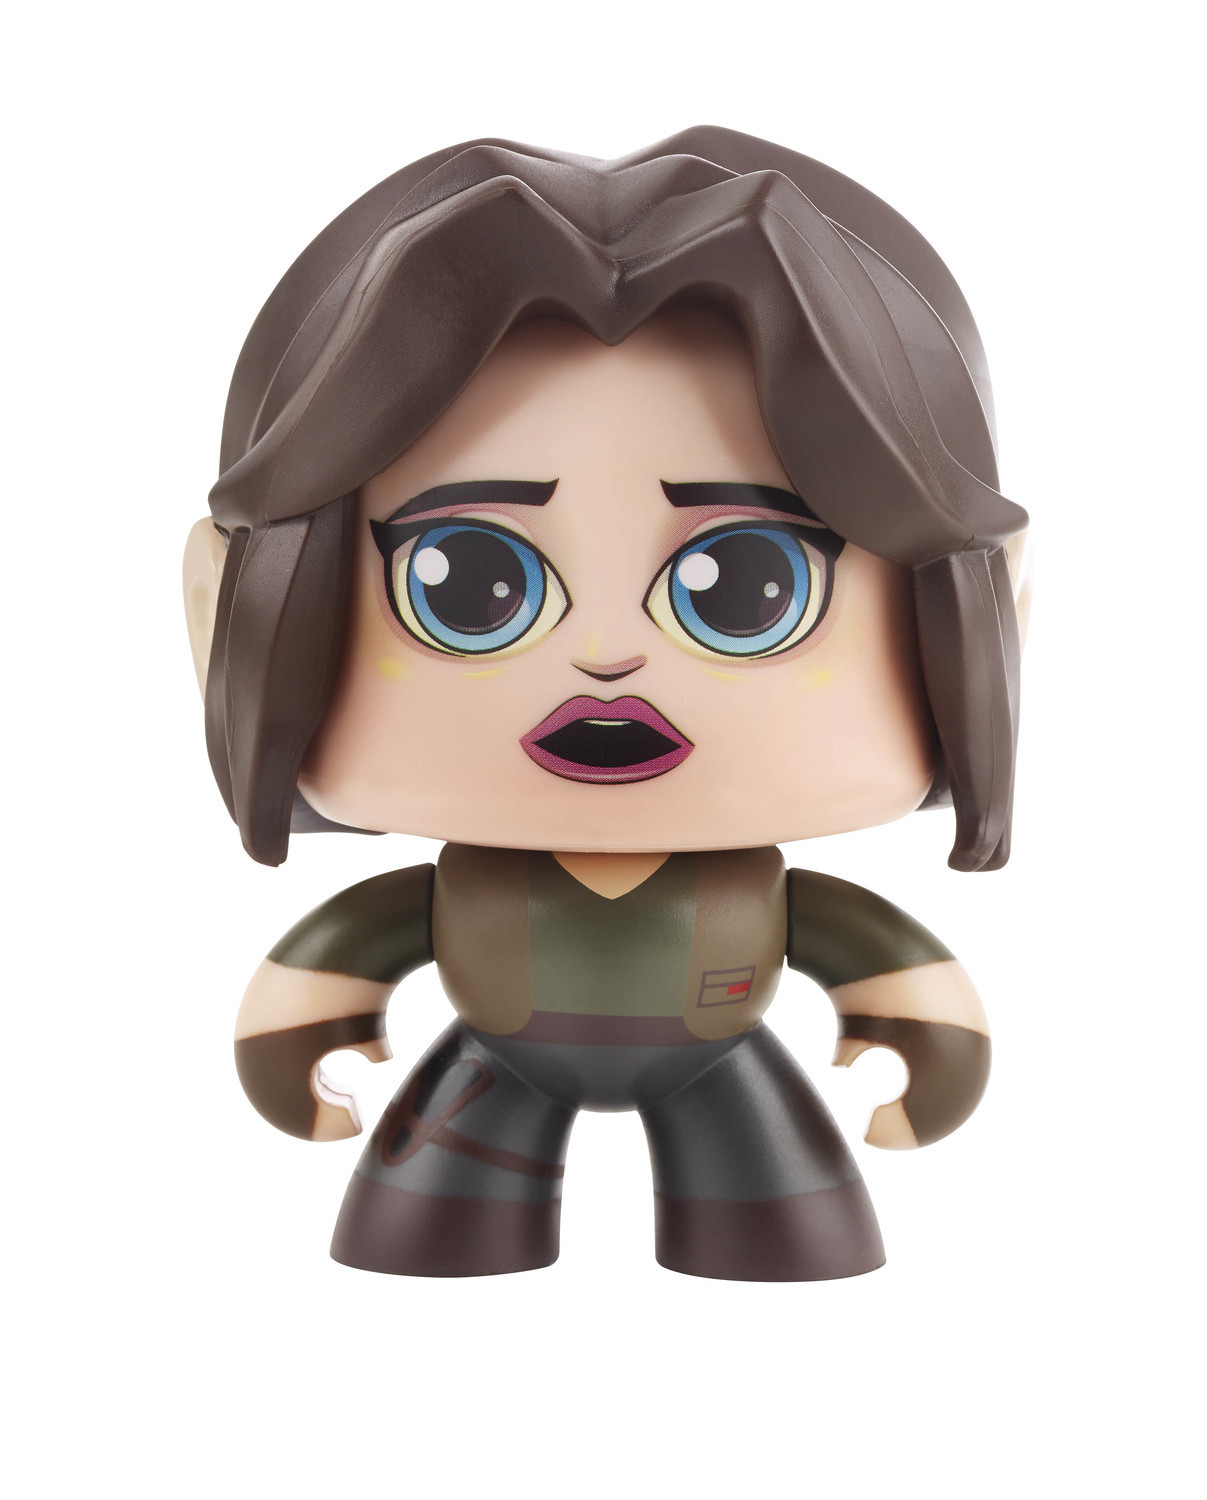 Hasbro e2187es0 STAR WARS   Mighty muggs Jyn Erso